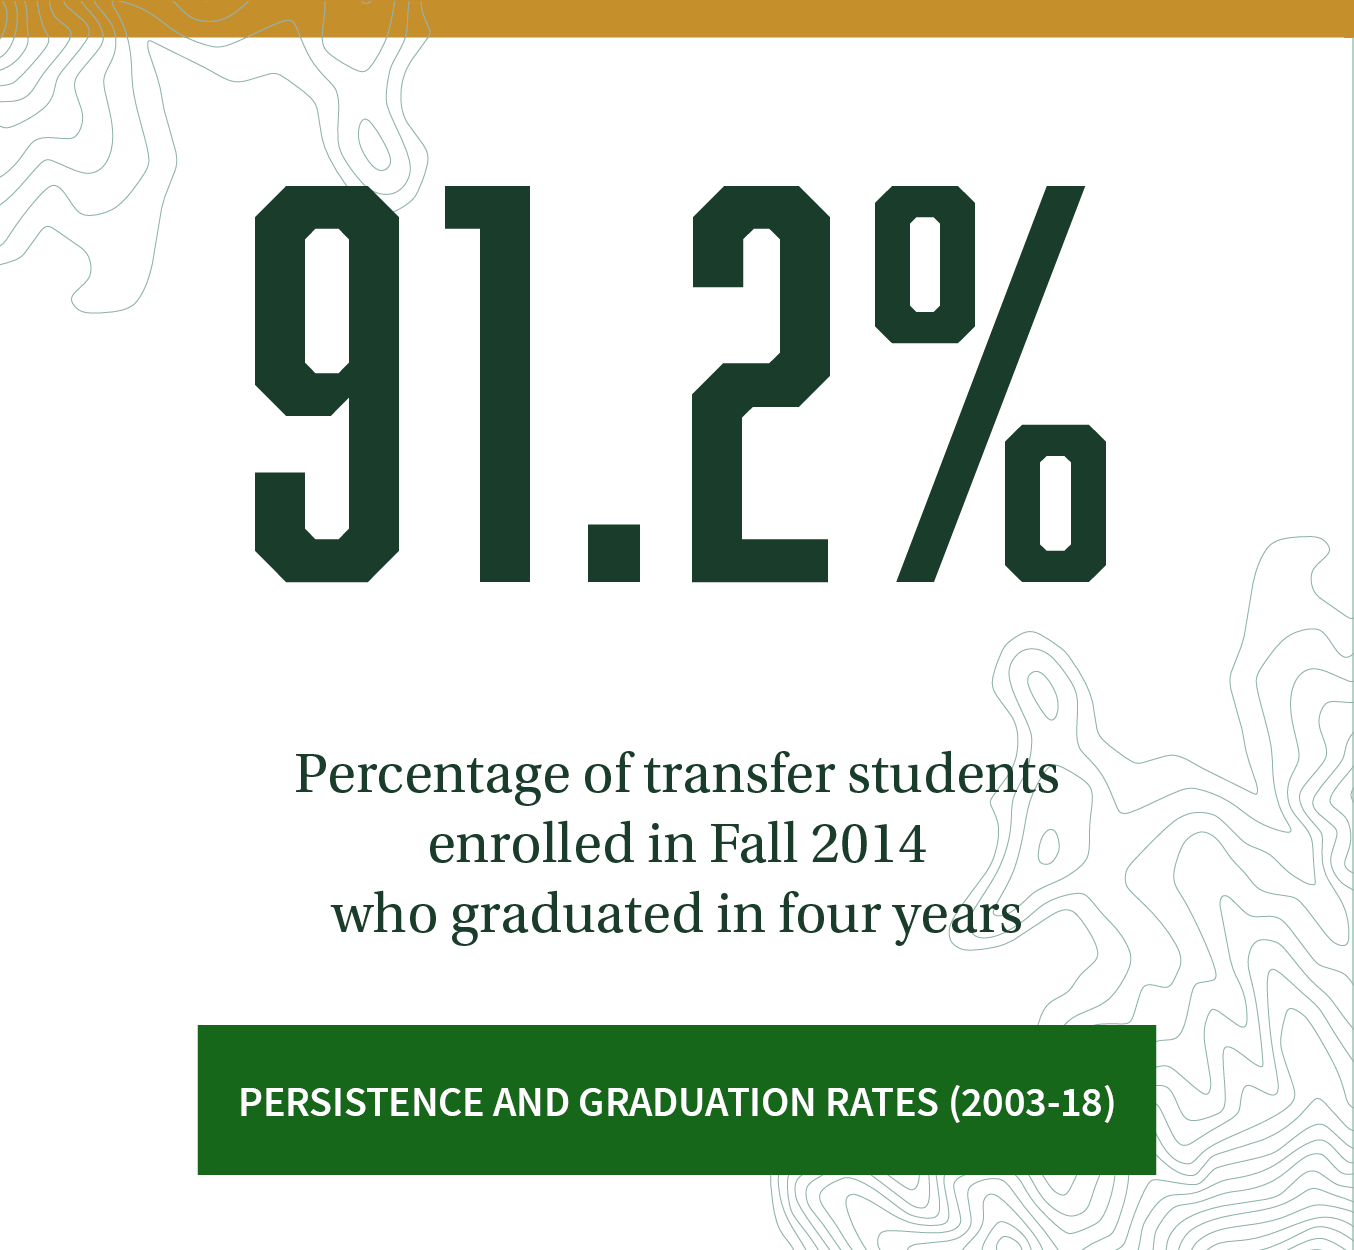 91.2% Percentage of transfer students enrolled in Fall 2014 who graduated in four years. Click to review more persistence and graduation rates (2003-18).